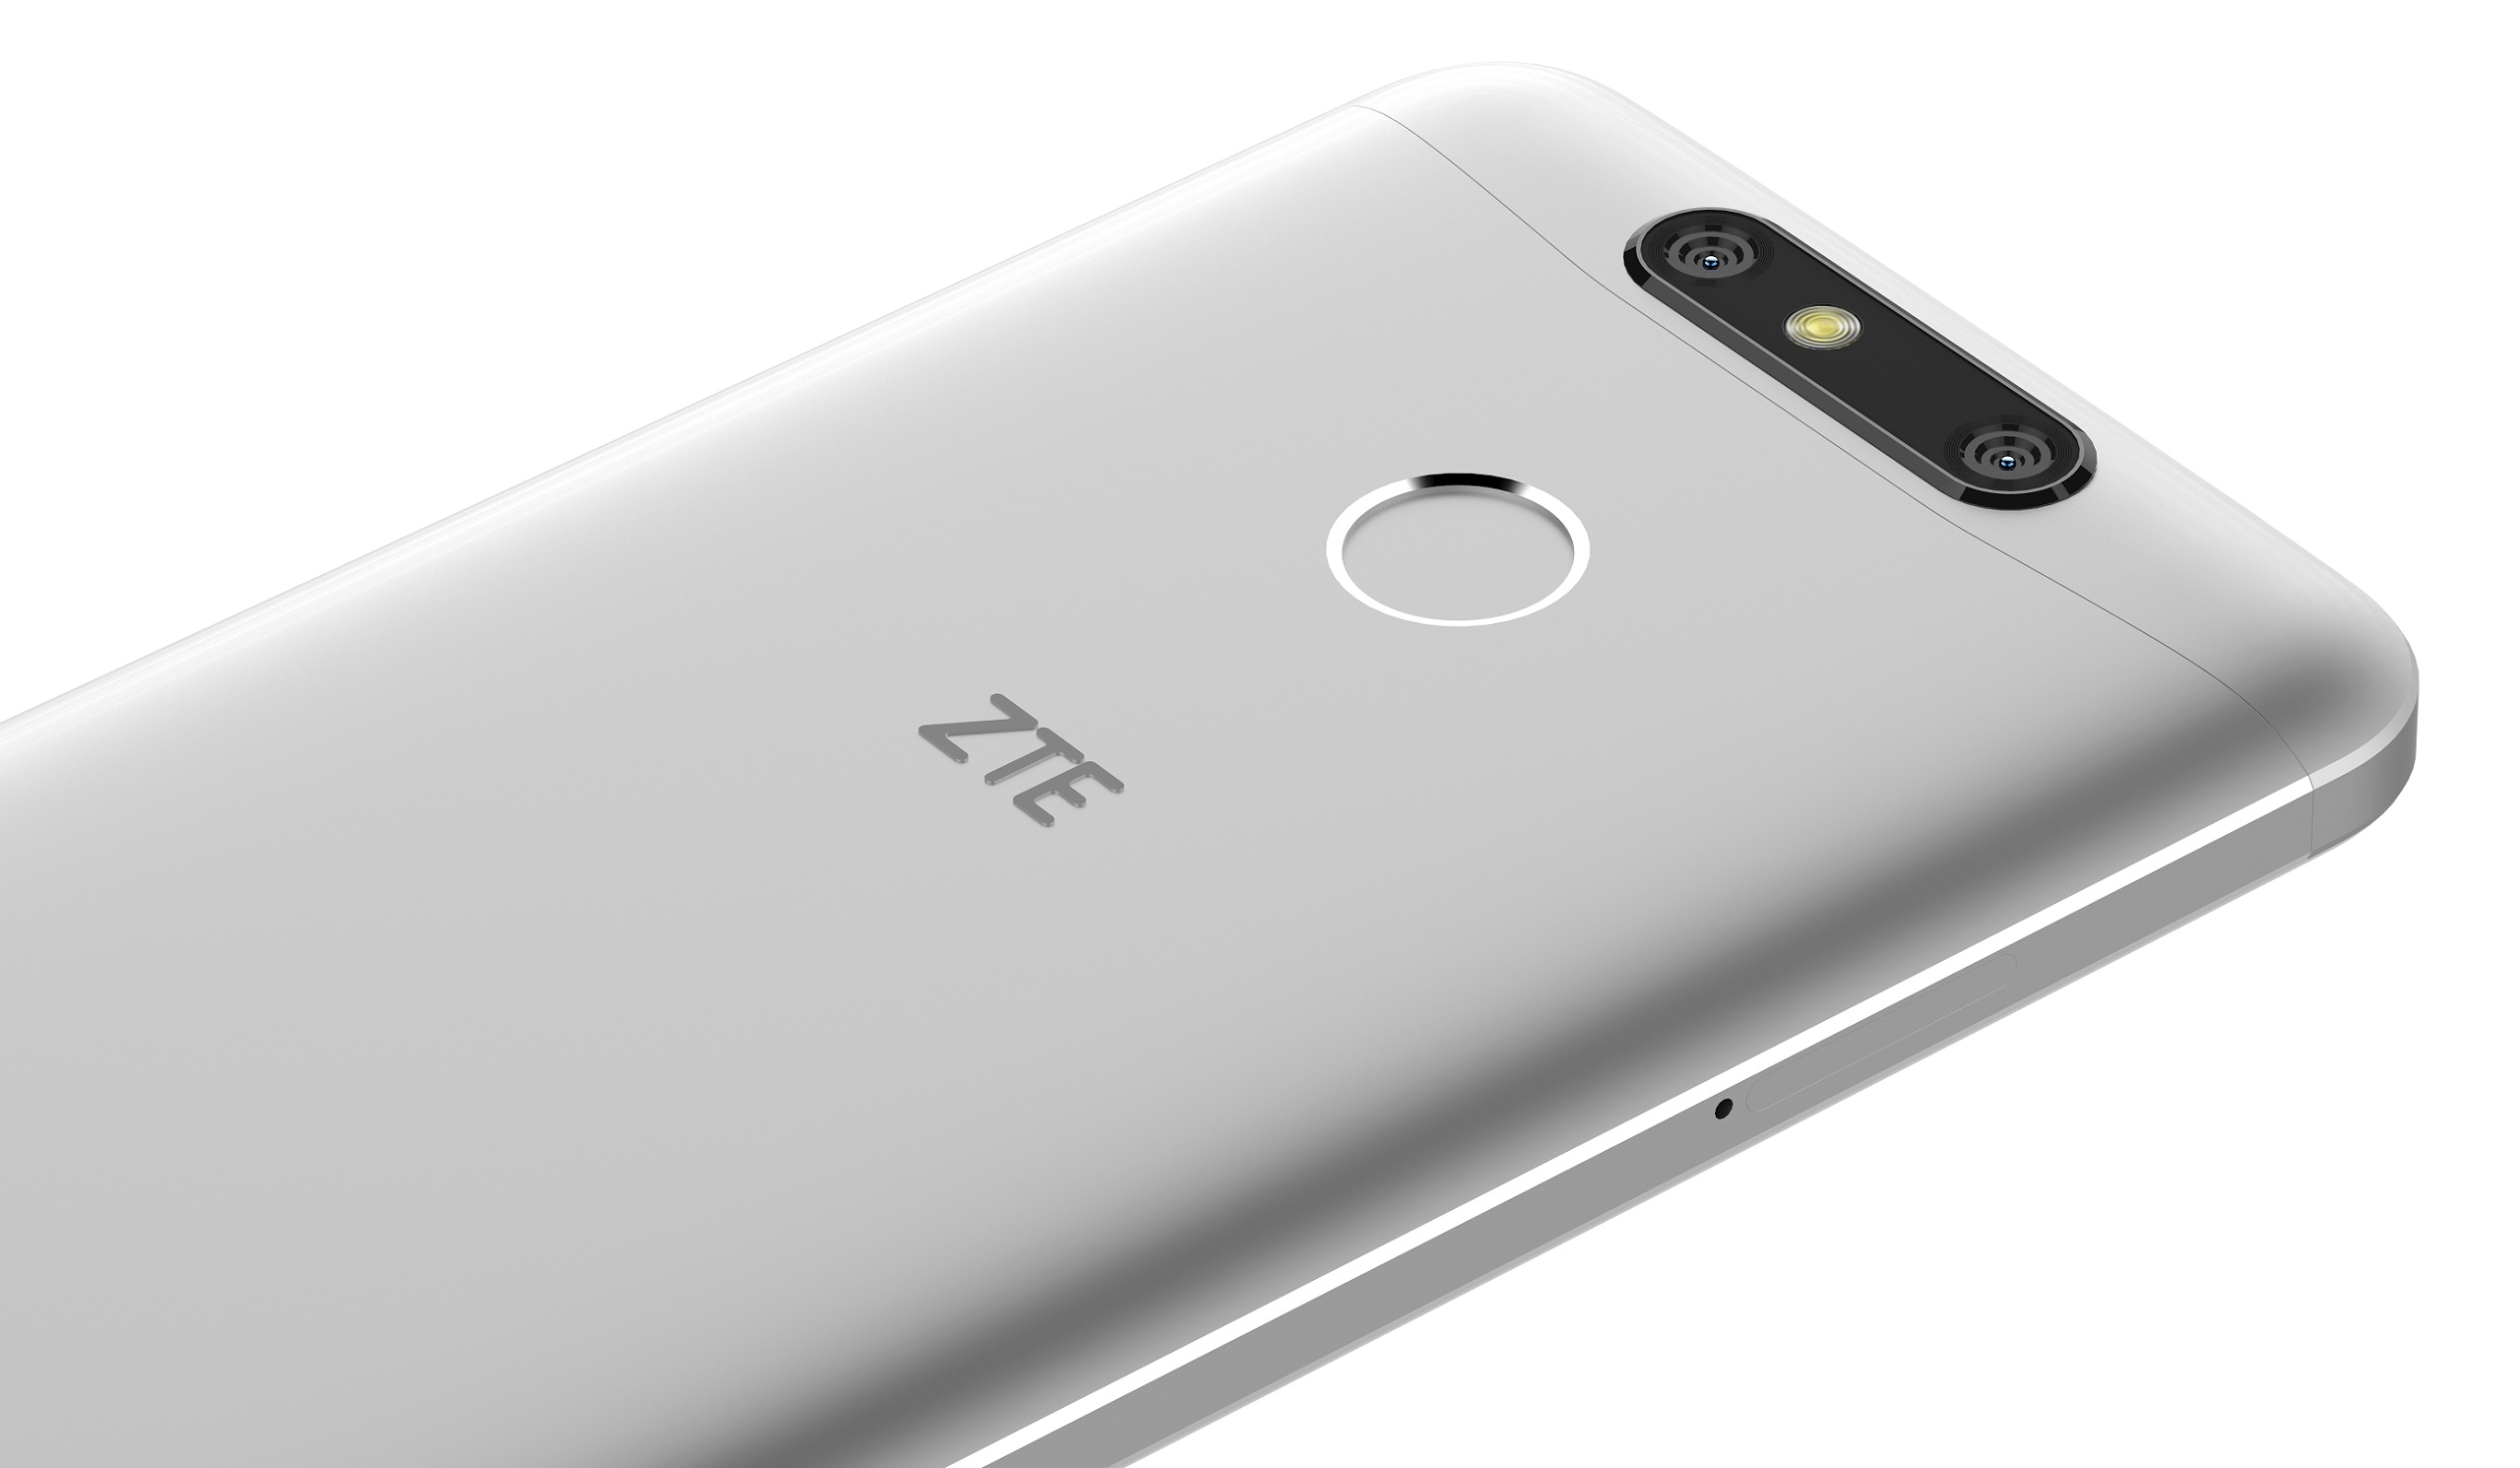 ZTE Blade V8 Mini Smartphone Review - NotebookCheck.net Reviews